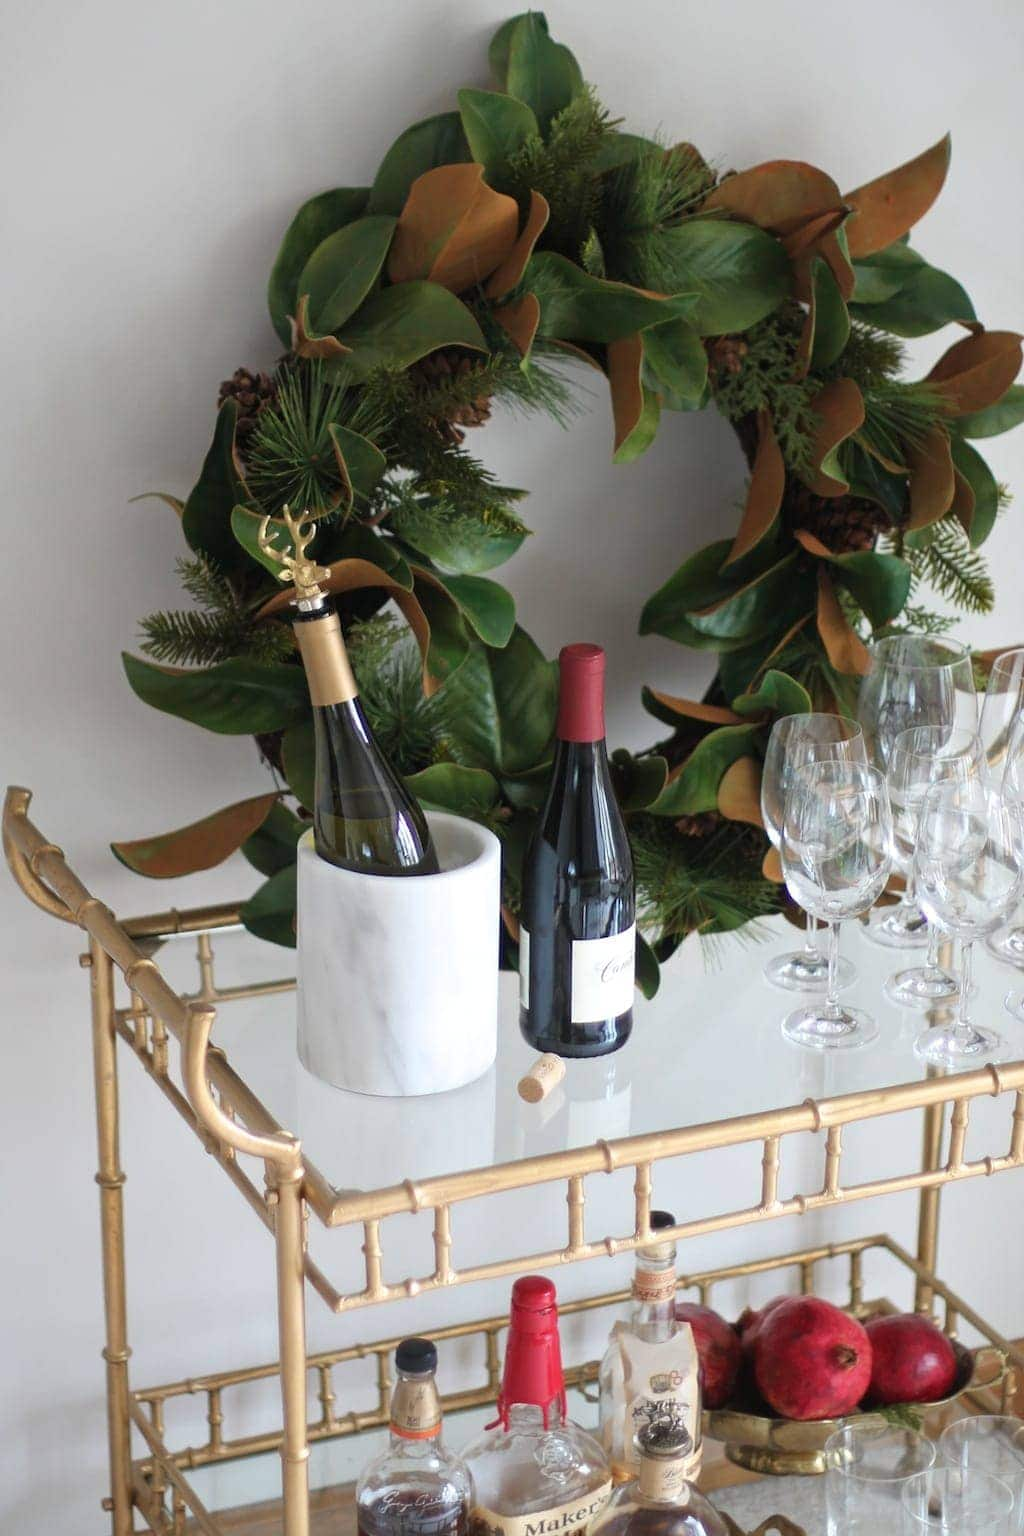 Beautiful brass bar cart styled for effortless Christmas entertaining with a magnolia wreath